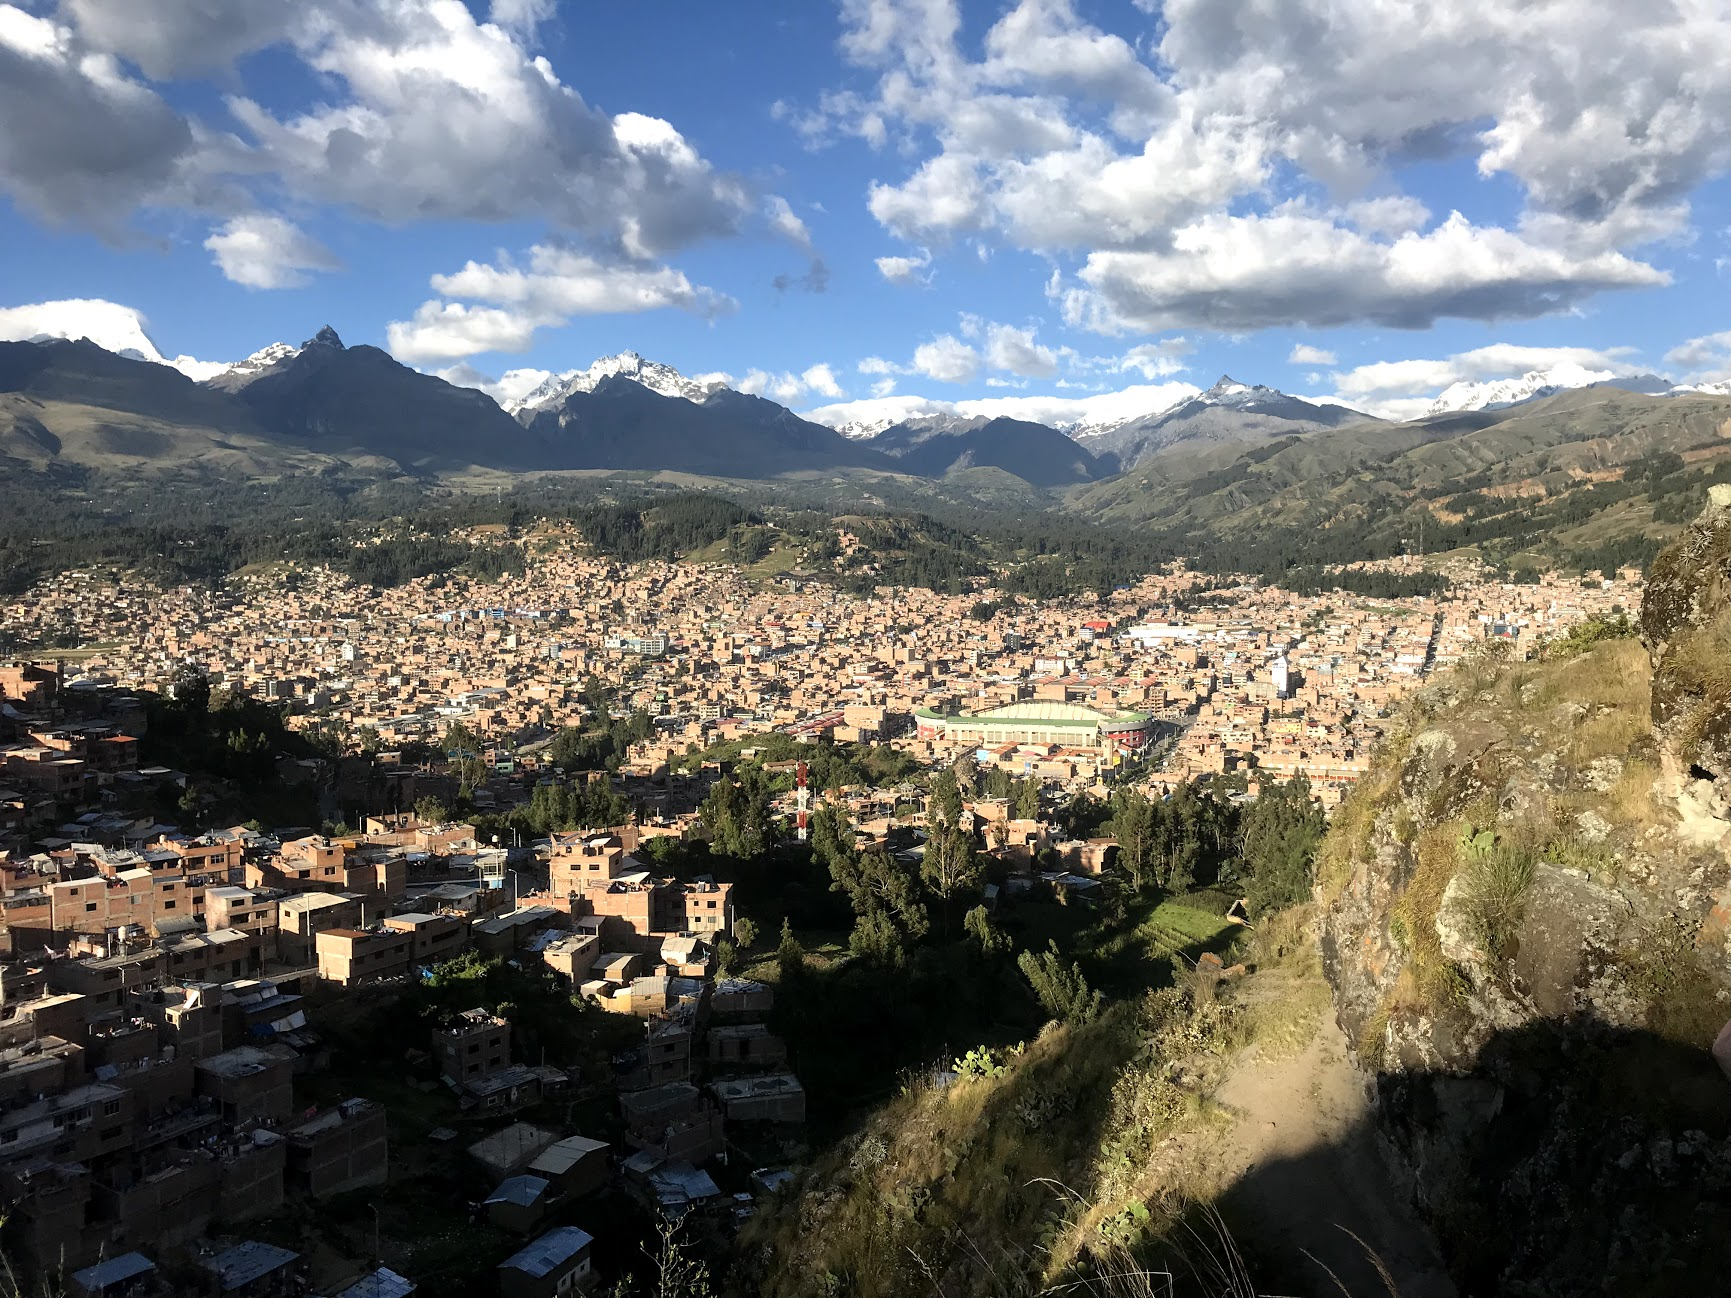 View of Huaraz, Peru from an overlook